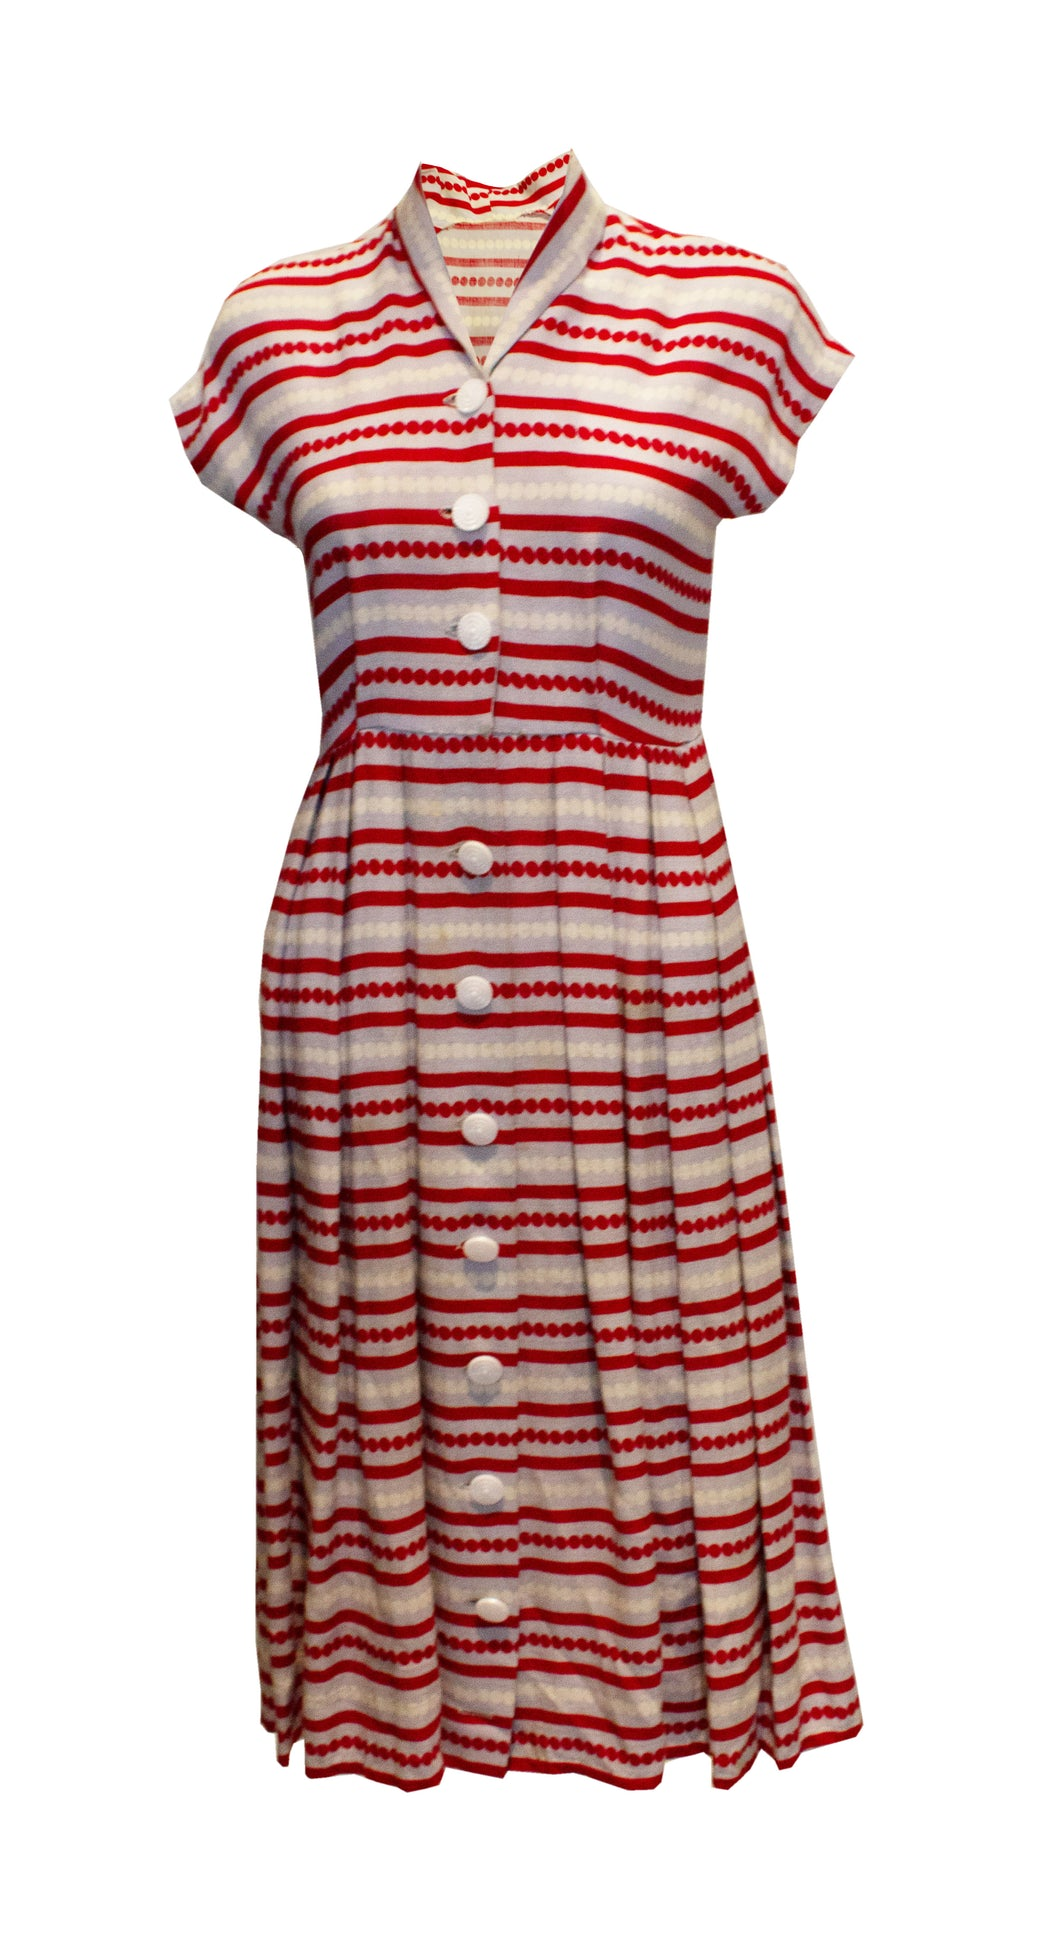 A Vintage 1940s stripe button up Day Dress